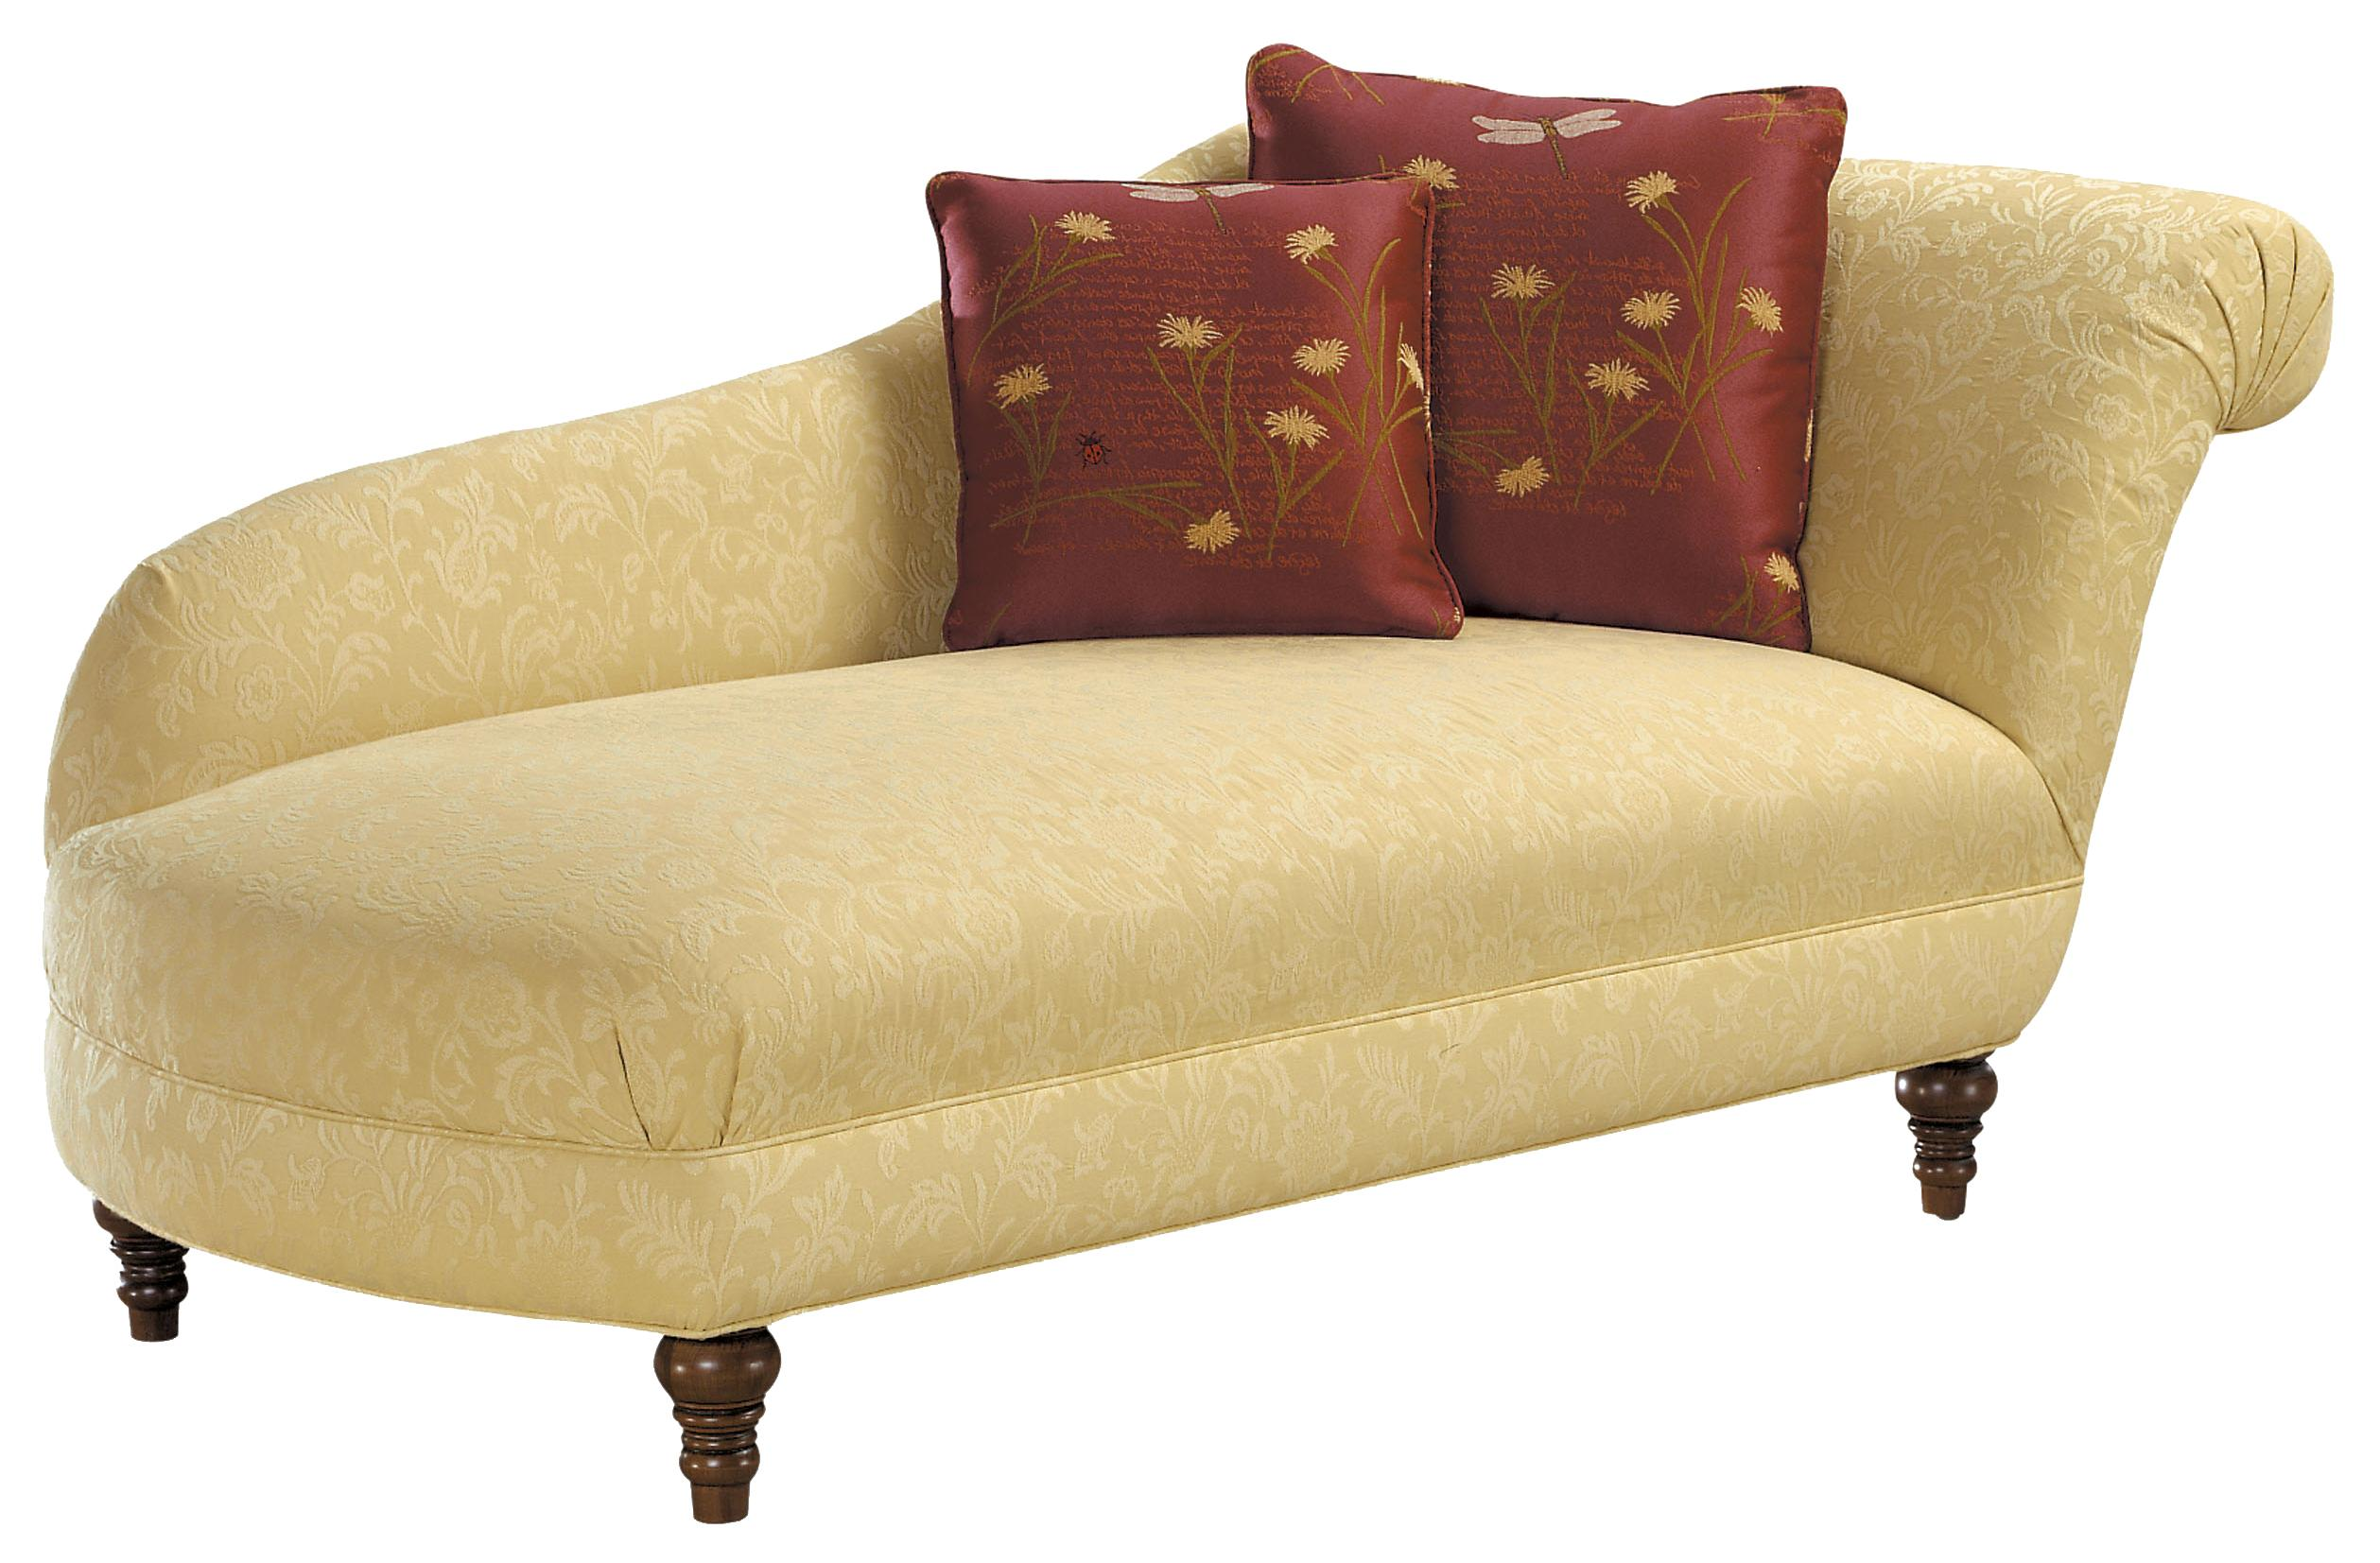 Fairfield sofa accents traditional styled lounge chaise olinde 39 s furniture chaises - Sofa chaise lounge ...